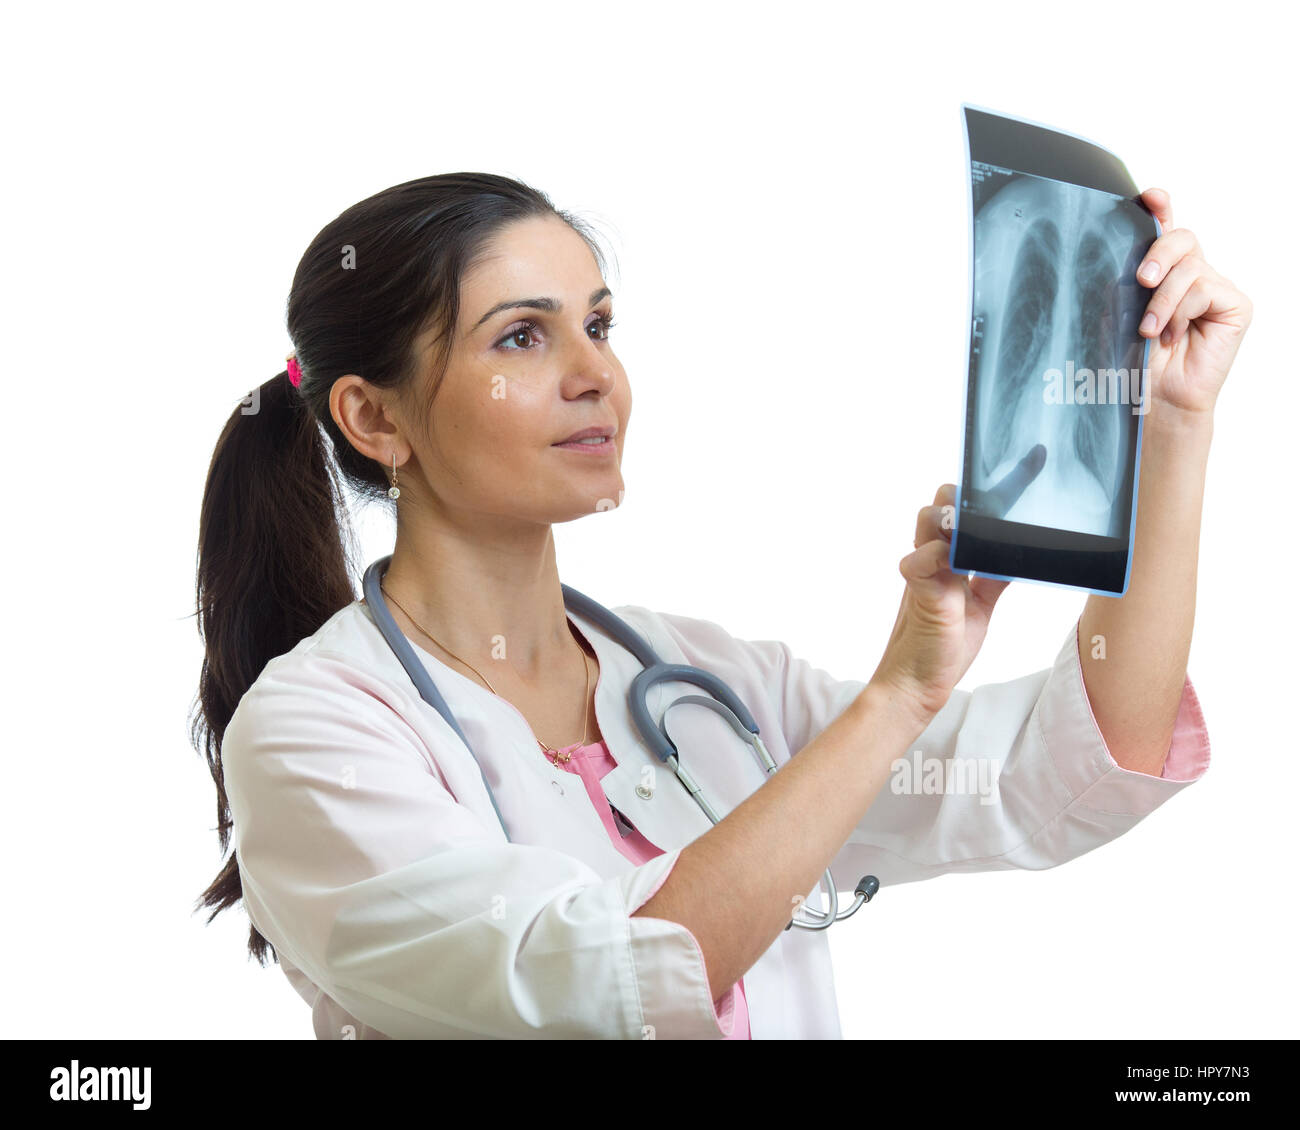 Young female doctor looking at the x-ray picture of lungs. Isolated on white background. - Stock Image